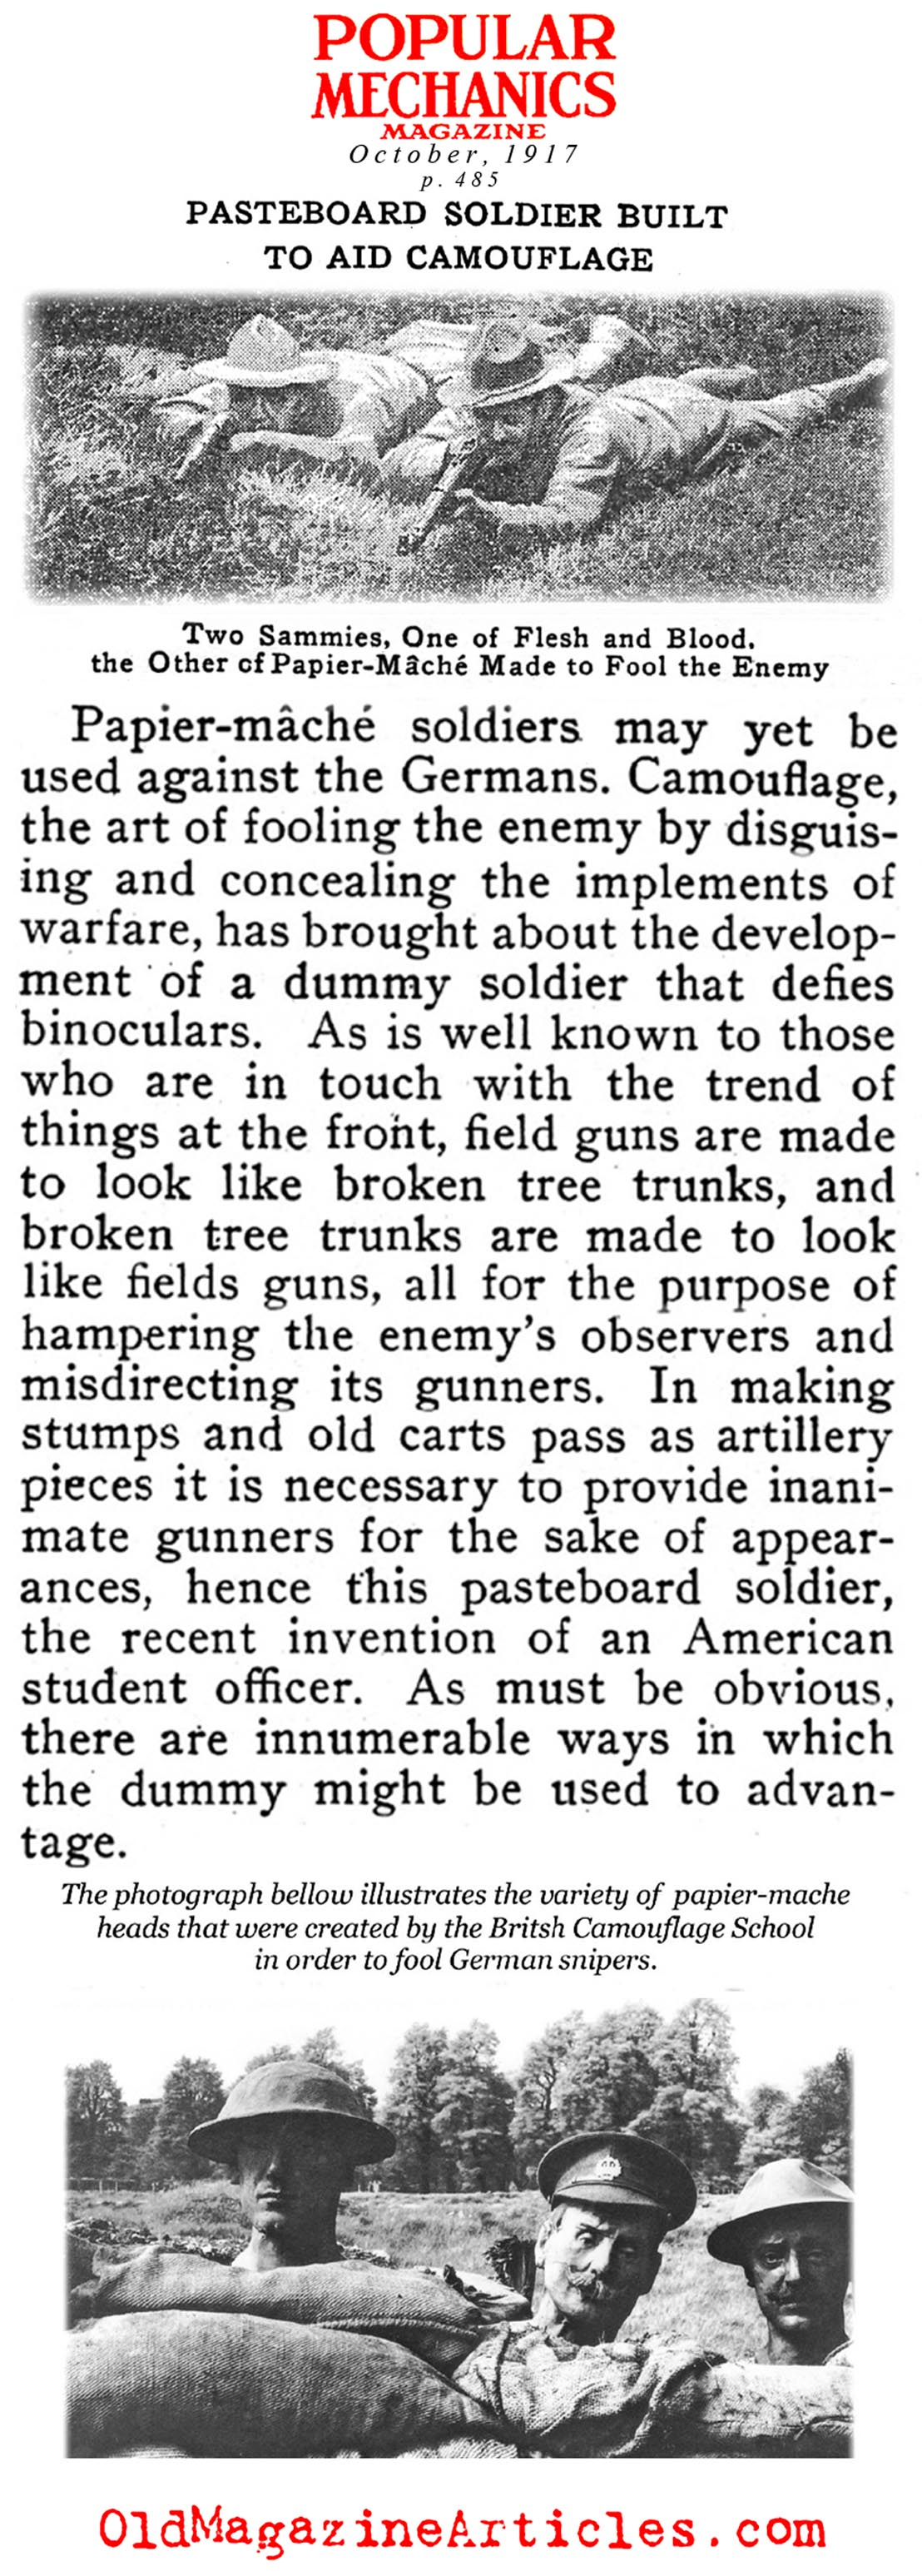 Papier-Mache Used to Deceive German Snipers (Popular Mechanics, 1917)